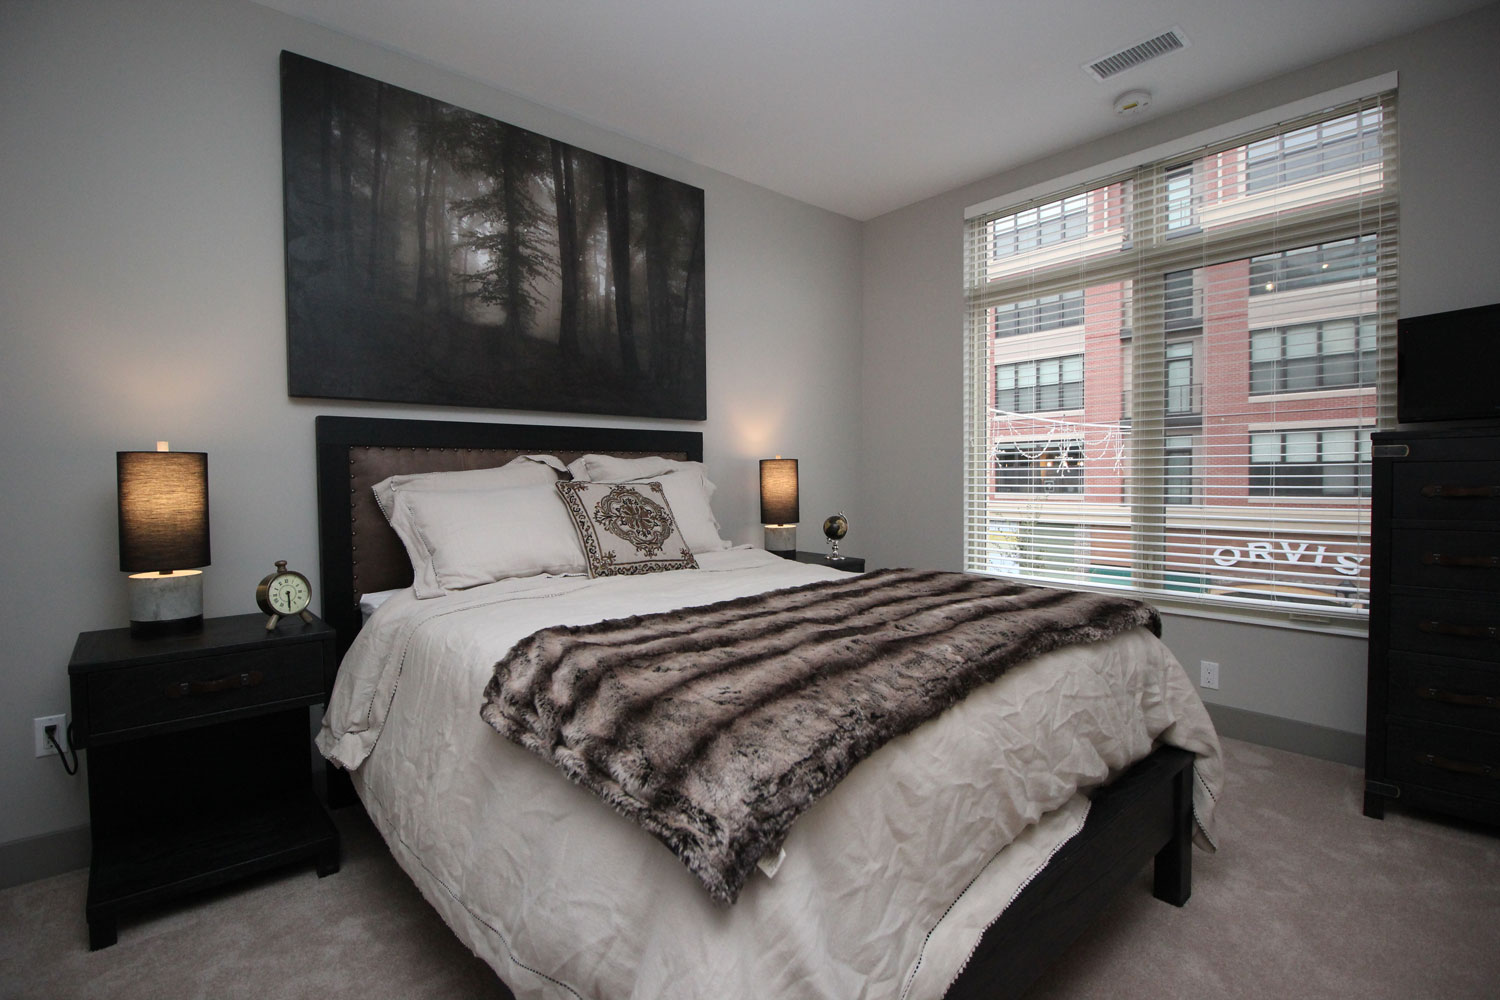 One of the bedrooms in Crocker Park's two-bedroom model apartment .